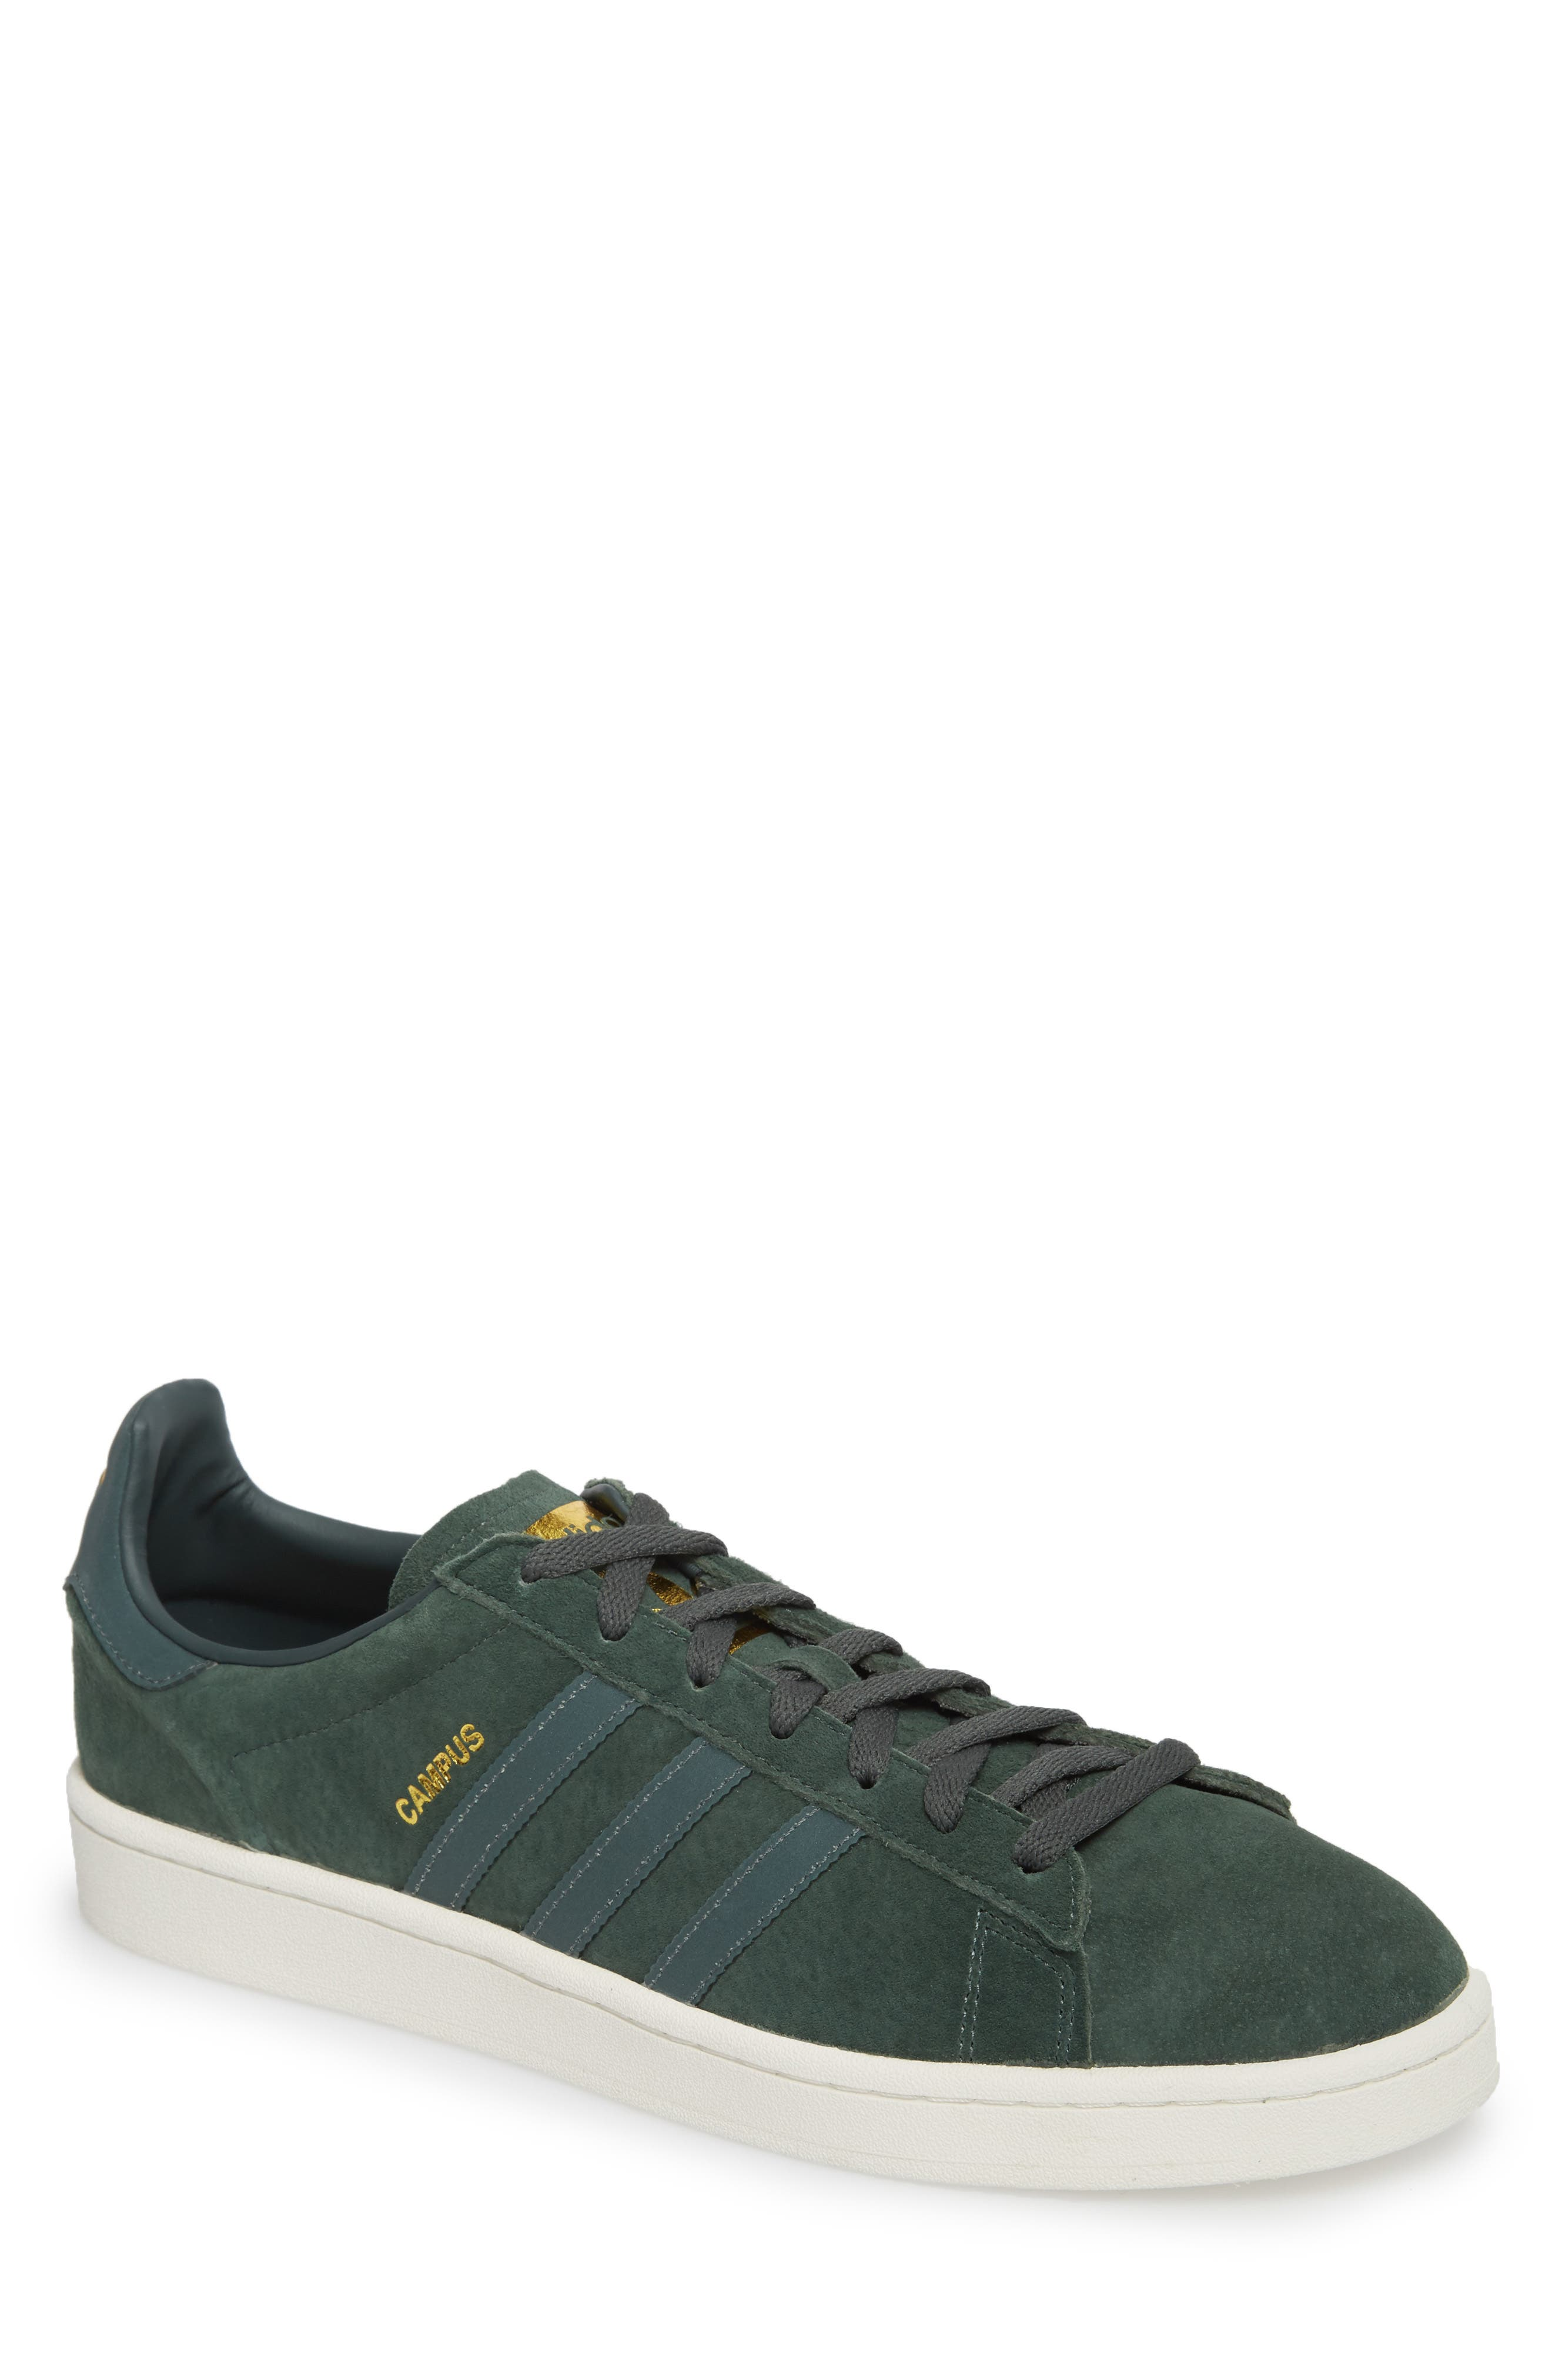 Campus Sneaker,                             Main thumbnail 1, color,                             Utility Ivy/ Reflective/ Gold